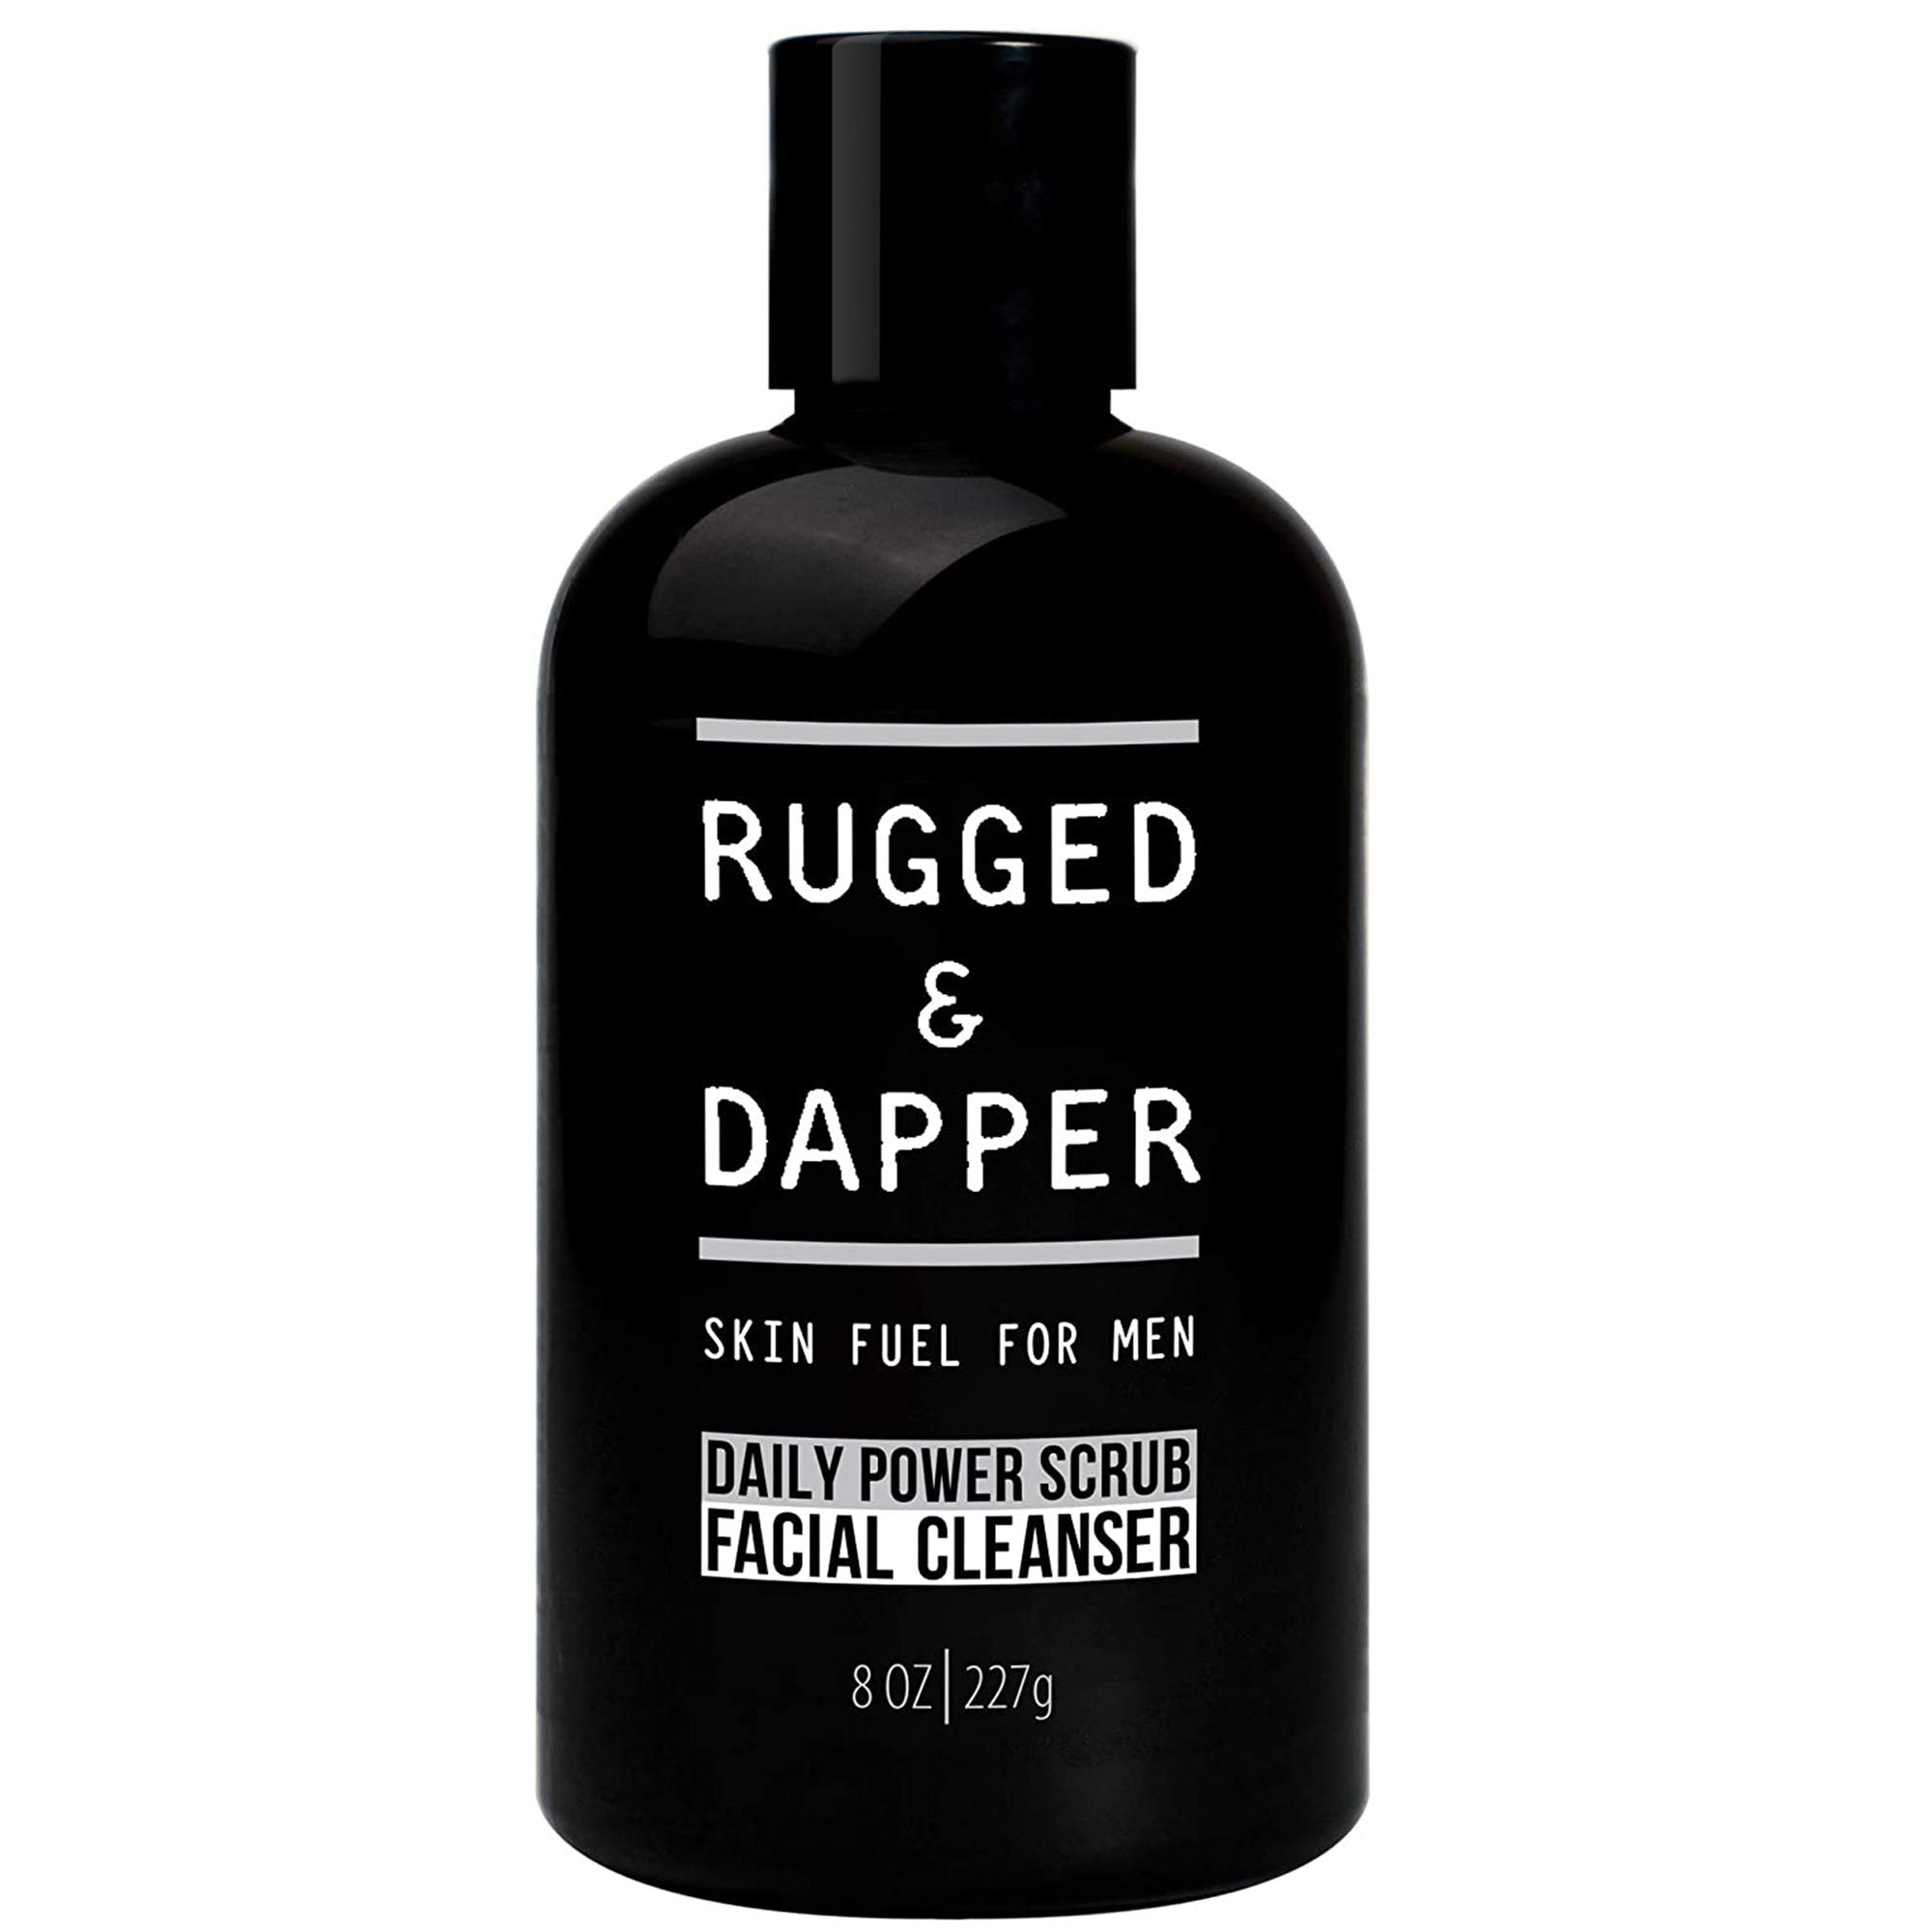 RUGGED & DAPPER Daily Power Scrub Face Wash + Exfoliating Facial Cleanser for Men | Organic & Non-Toxic Skincare - 8 Oz